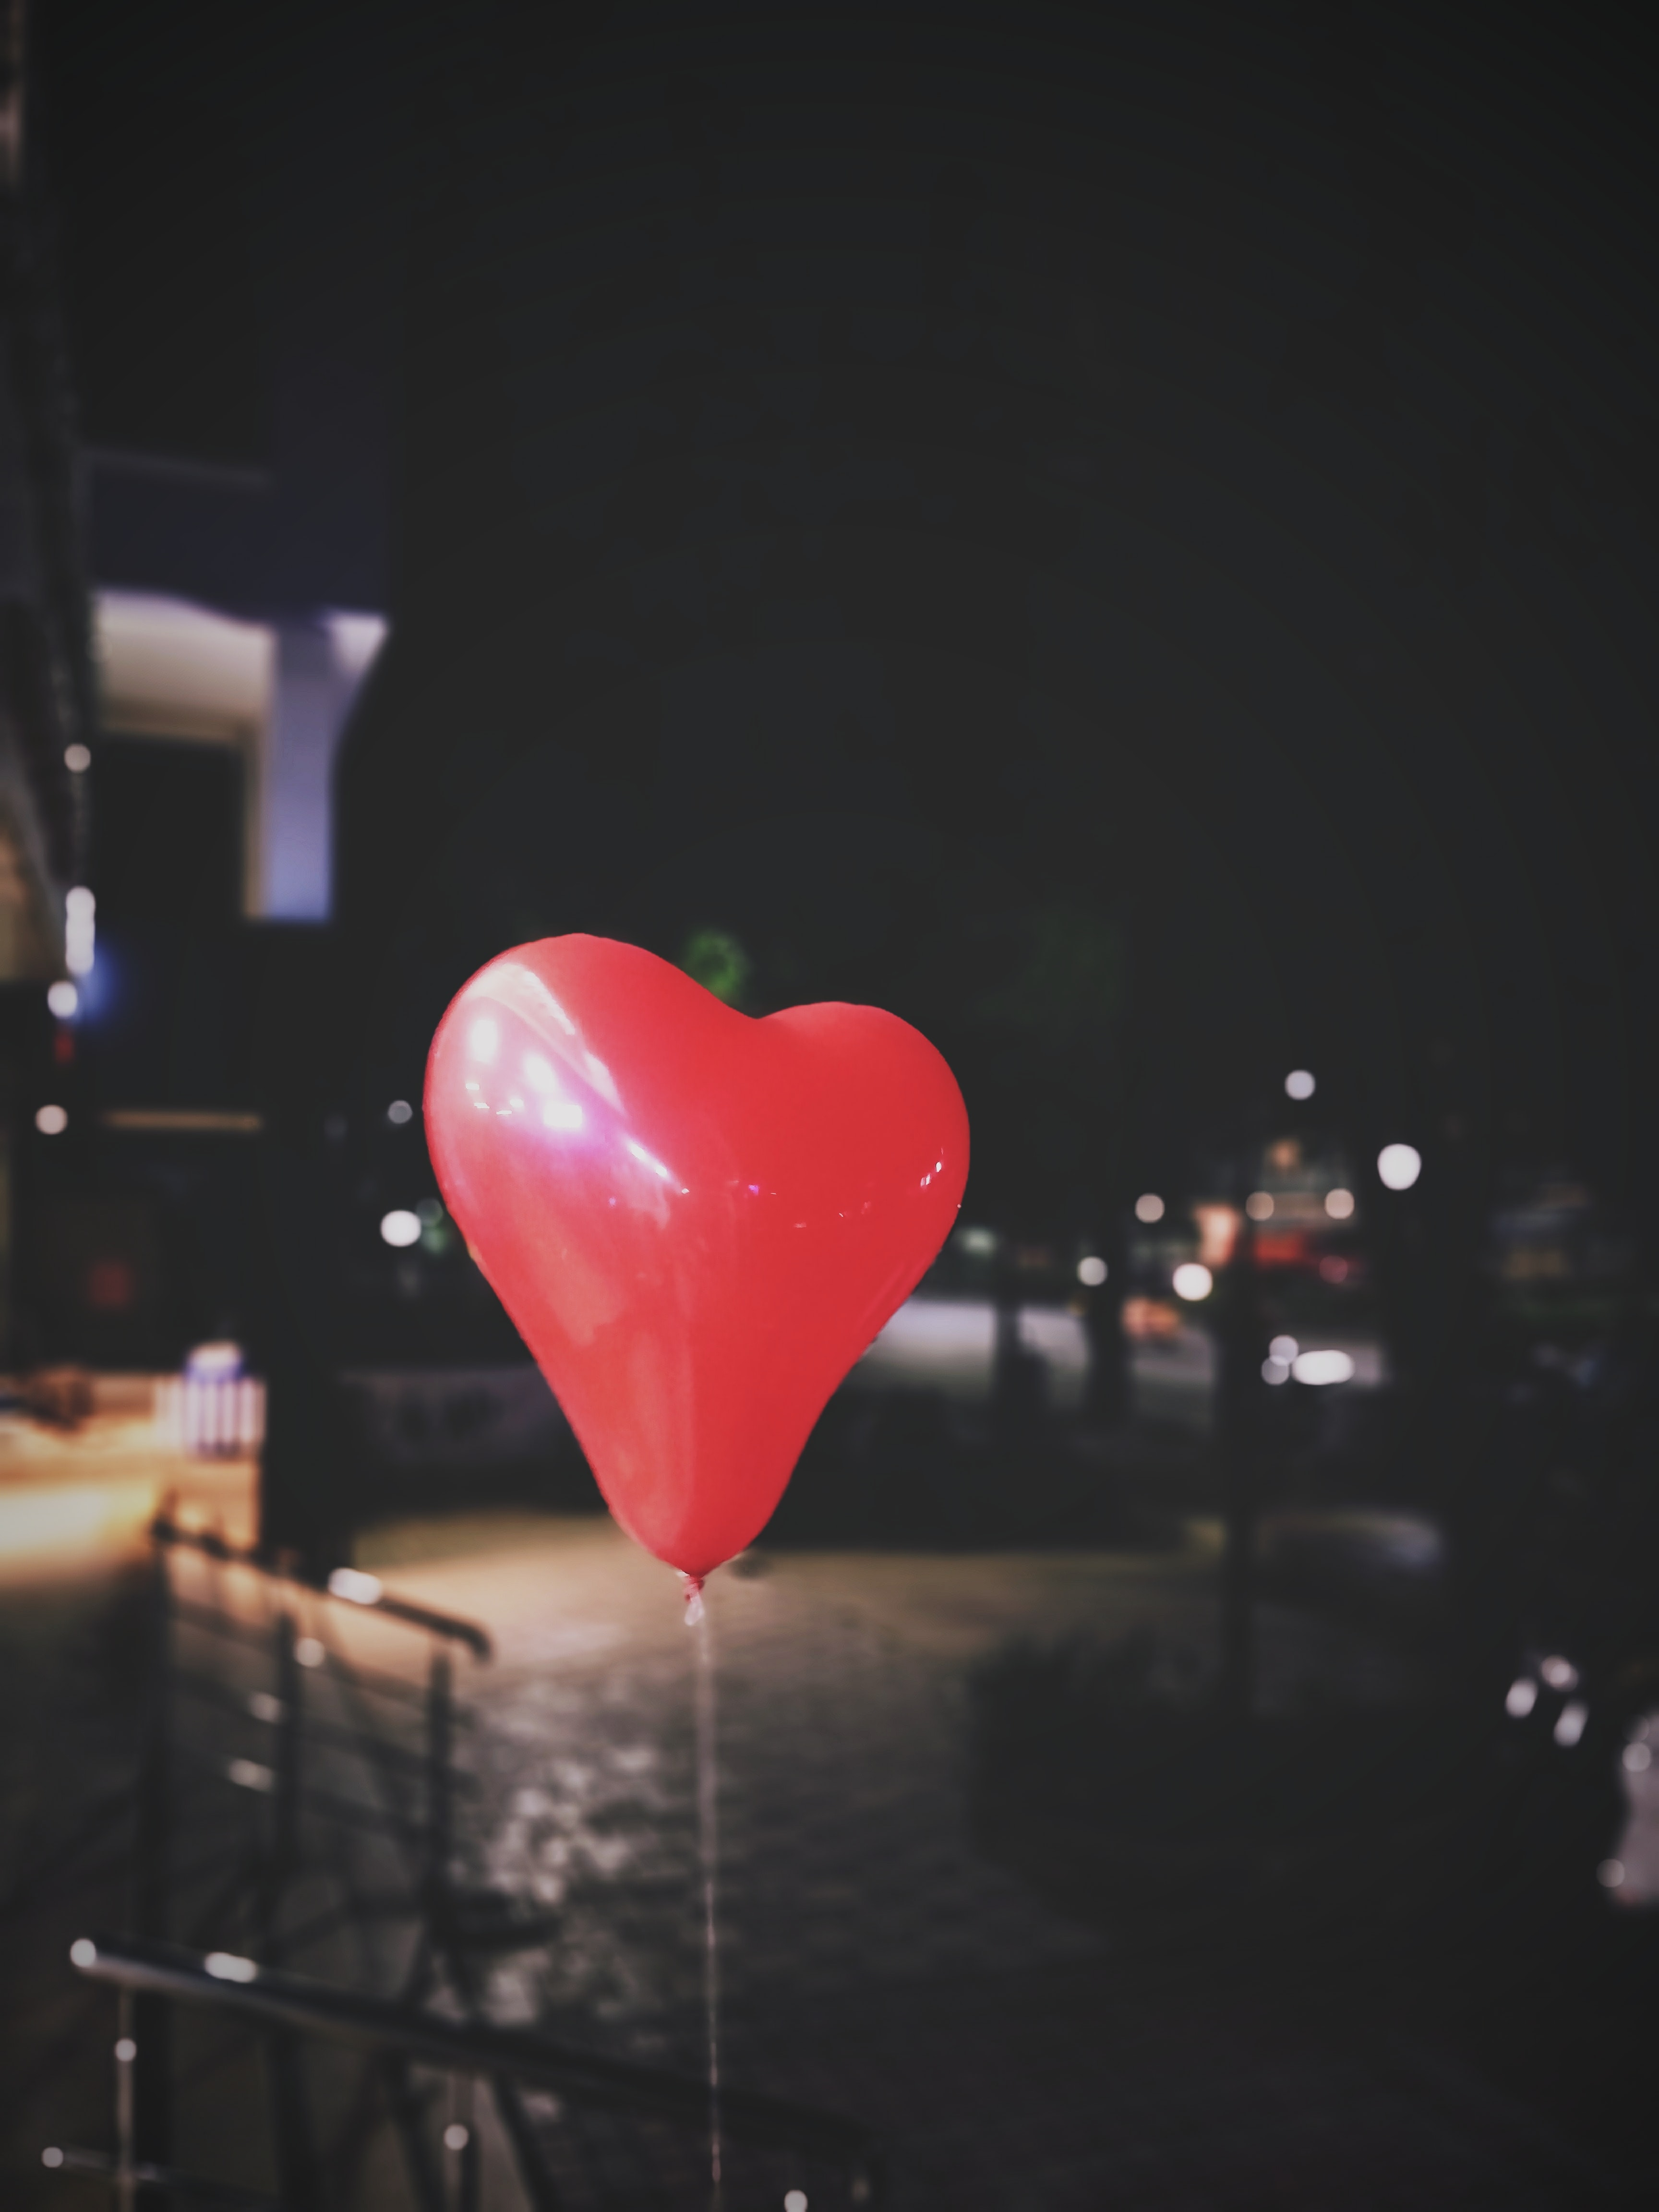 red heart balloon close-up photography